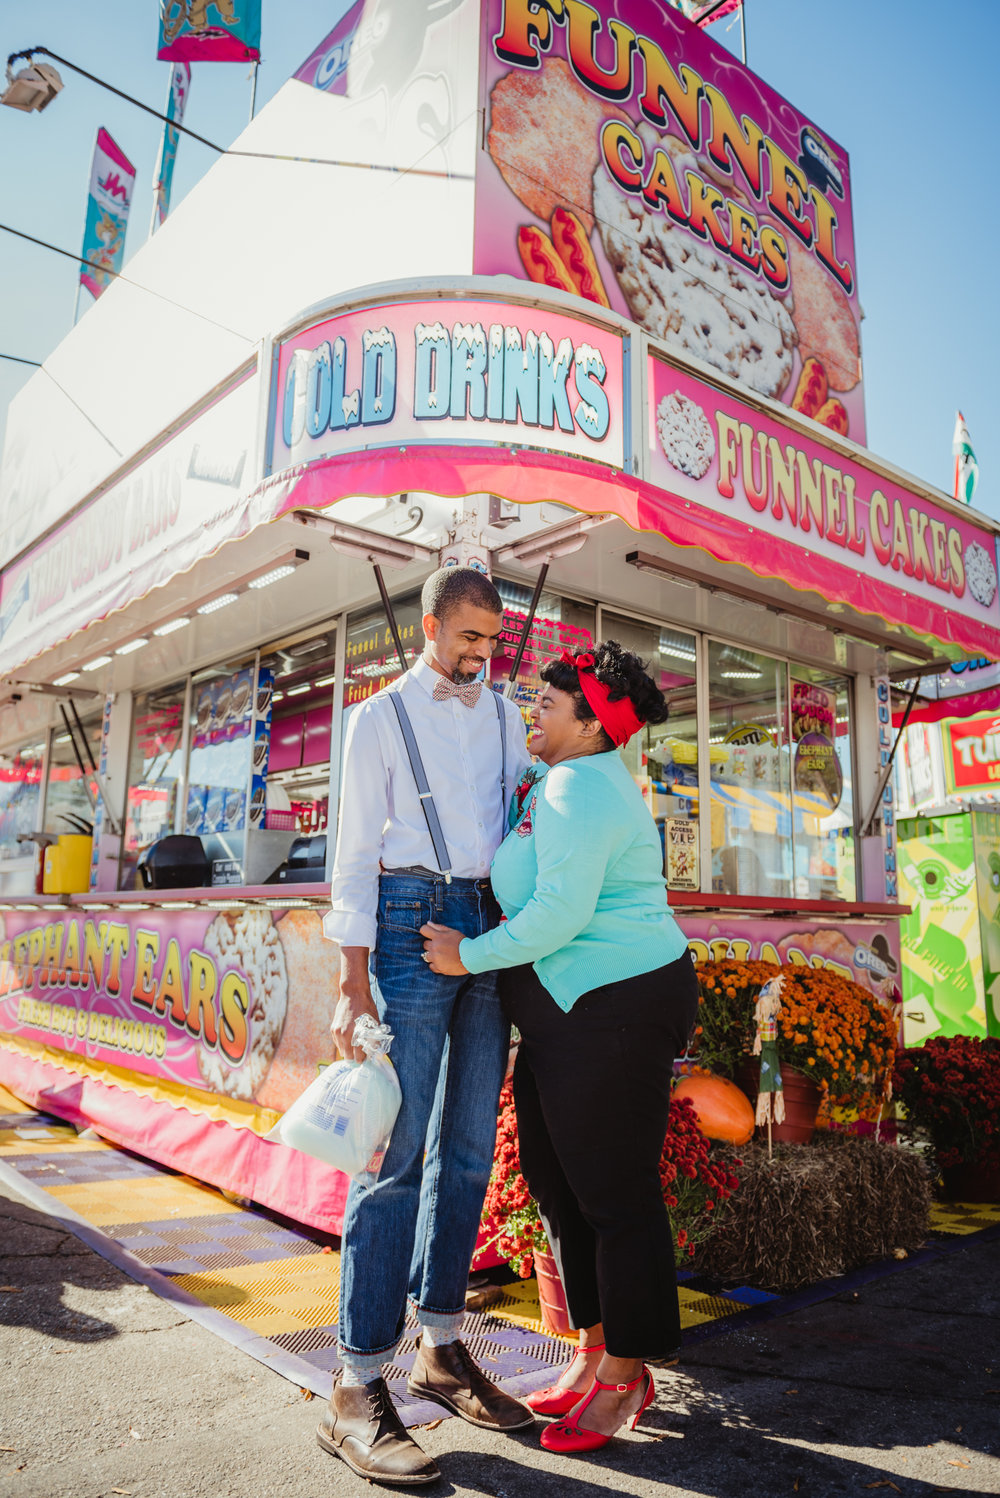 cotton-candy-and-snuggling-at-the-NC-State-fair.jpg